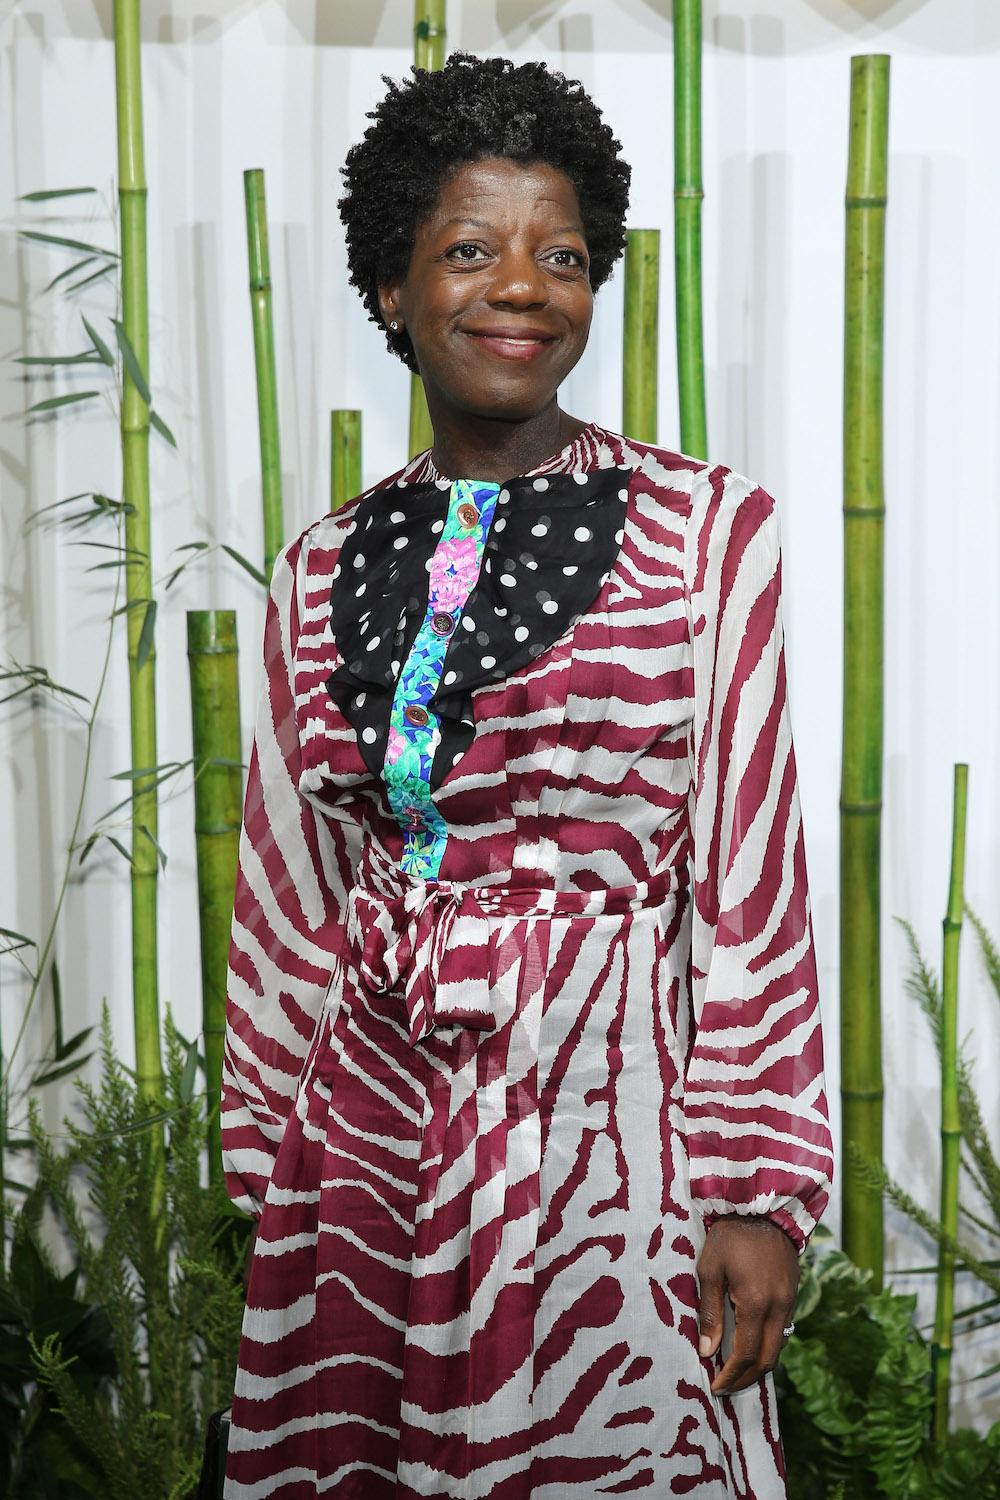 Thelma Golden attends the Museum Of Modern Art's 2015 Party In The Garden at Museum of Modern Art on June 2, 2015 in New York City. (Photo by Neilson Barnard/Getty Images)